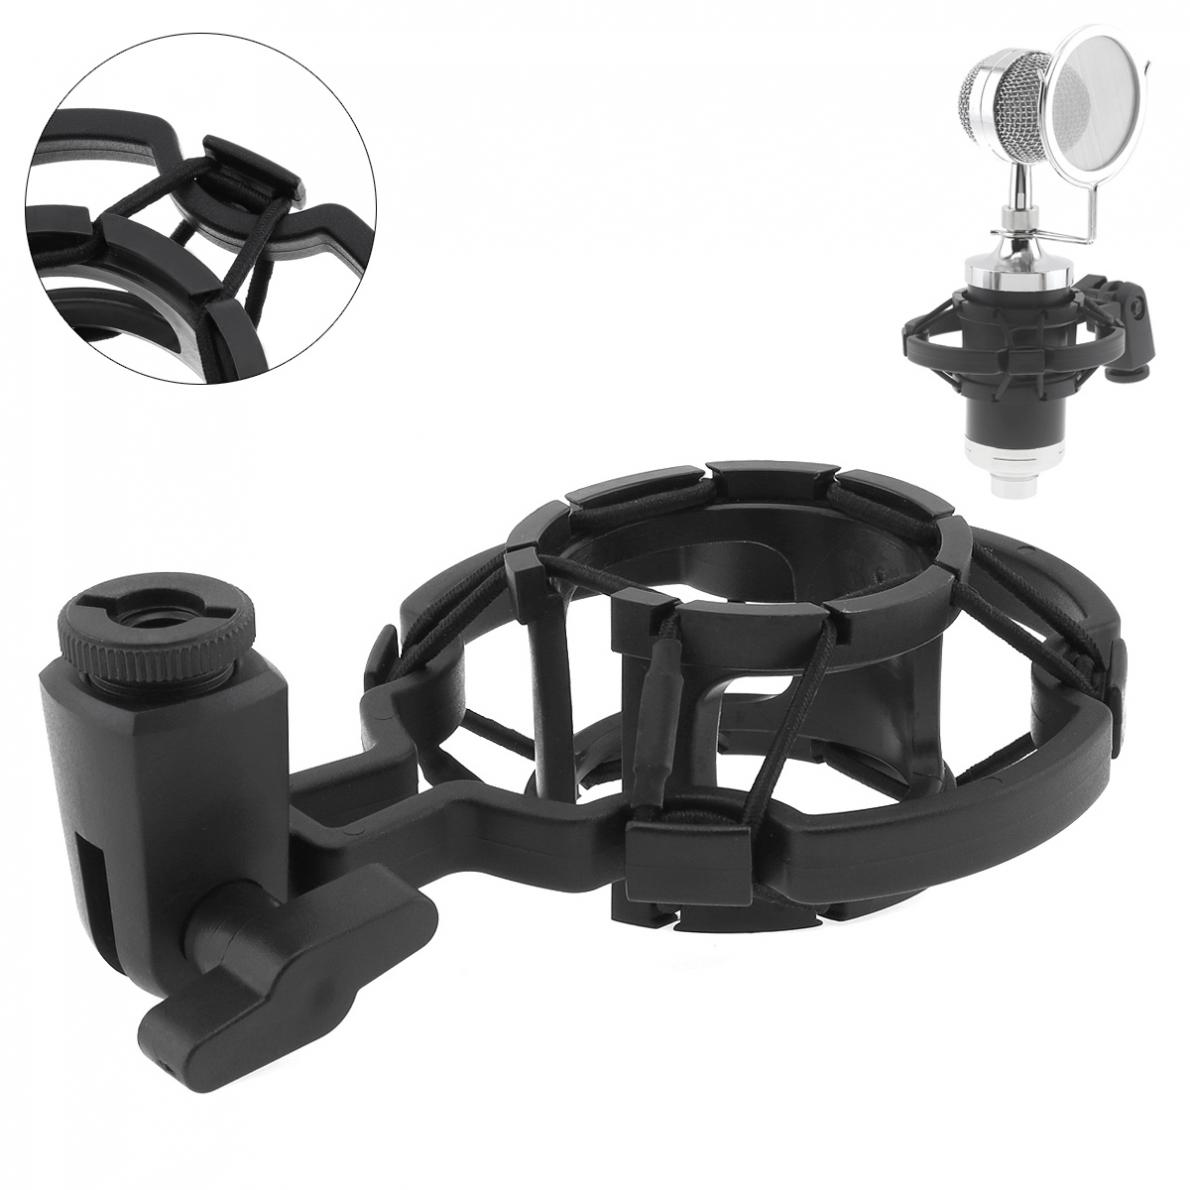 Plastic Recording Studio  Clip  Spider Microphone Stand Shock Mount With Transfer For Computer Condenser Mic